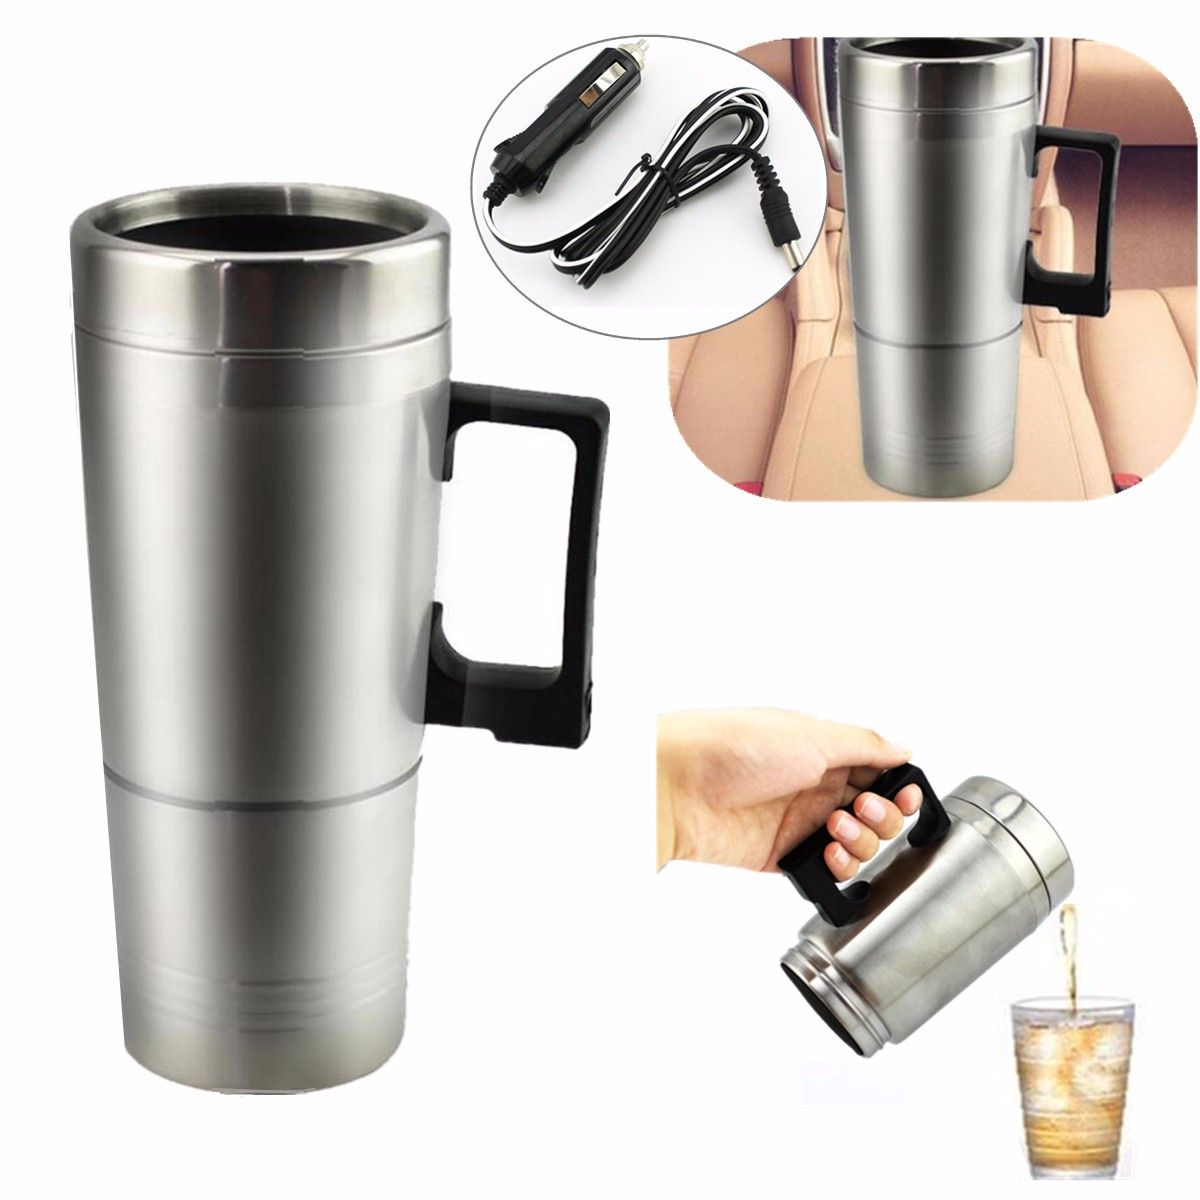 1PCs 12V Stainless Steel Car Heating Cup Milk Water Tea Coffee Bottle Warmer Heated Travel Mug For Traveling Camping